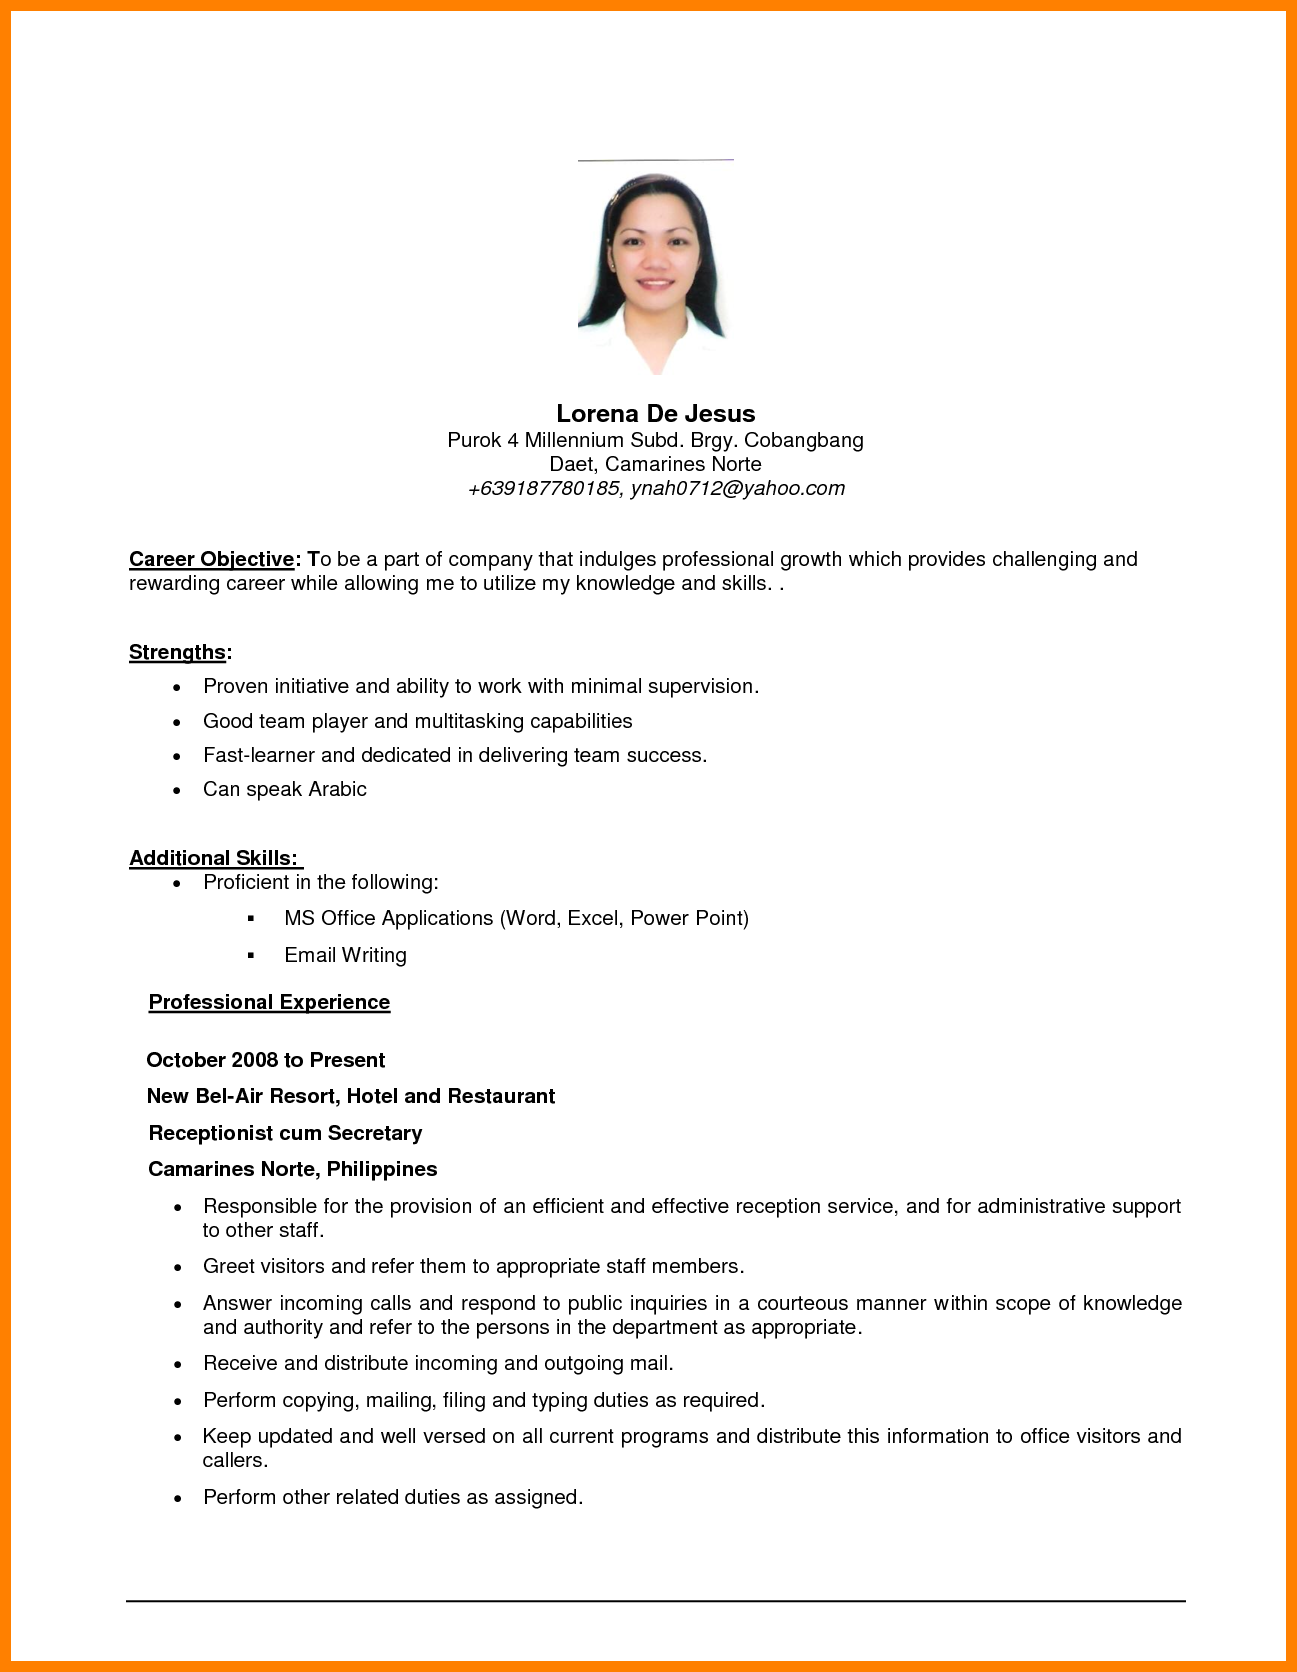 Examples for resume objectives